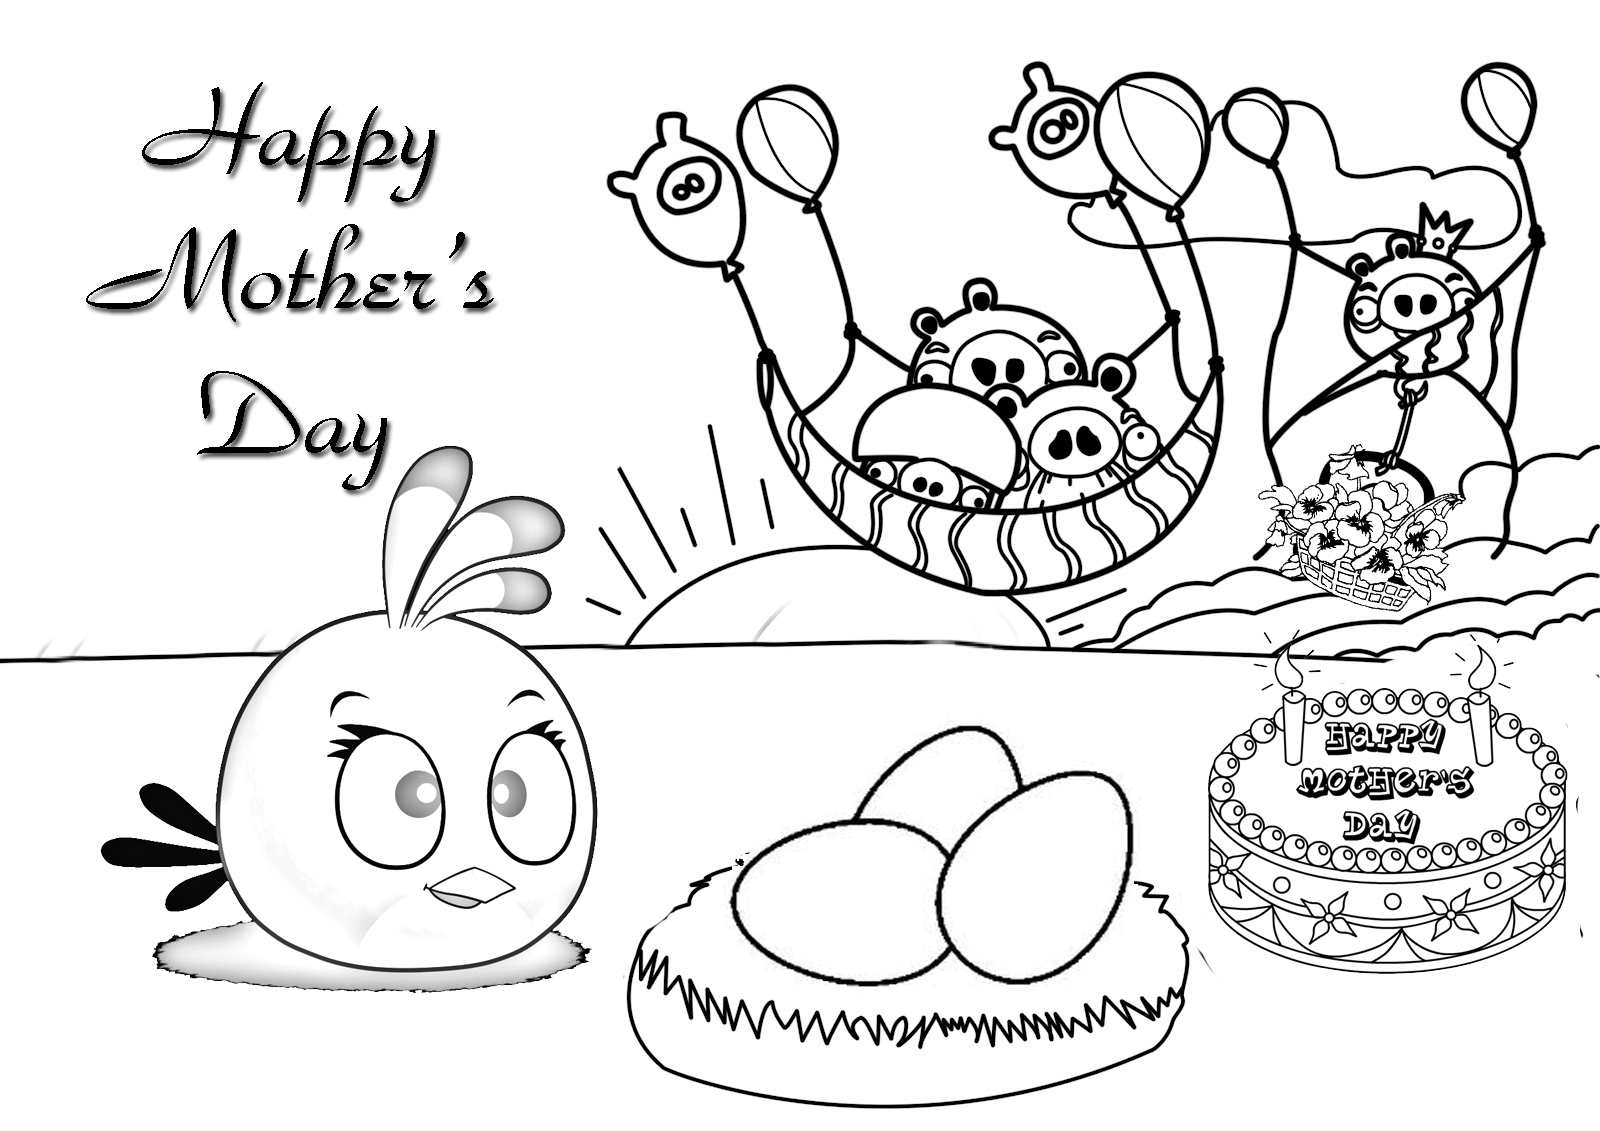 Happy Mothers Day Coloring Pages Angry Birds